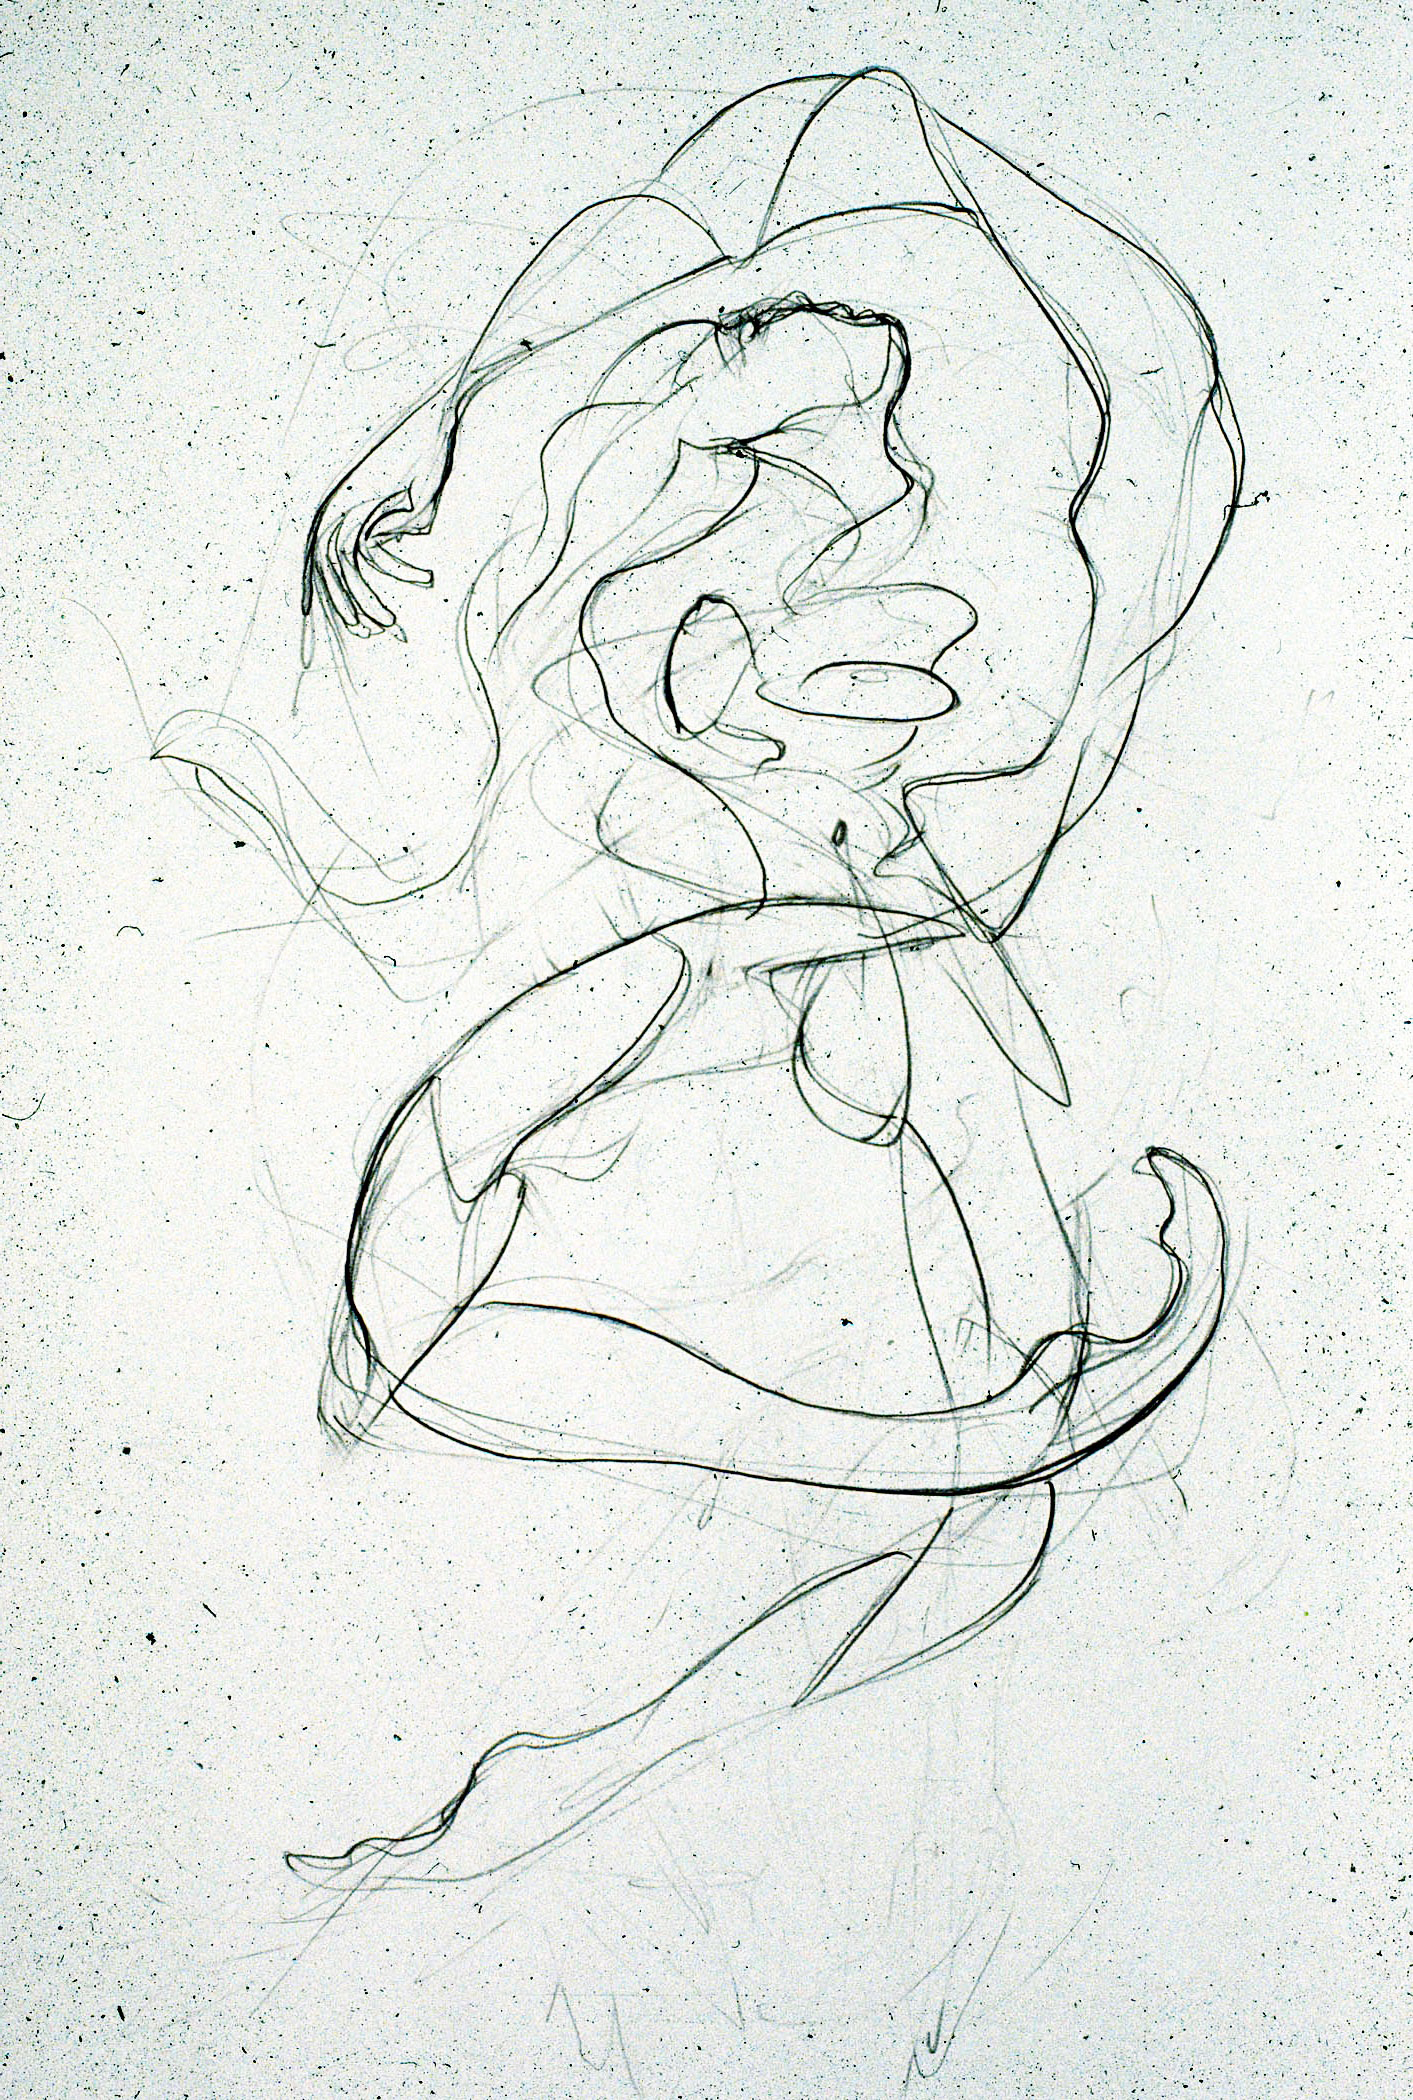 2010  Graphite on canvas  24x18 in.